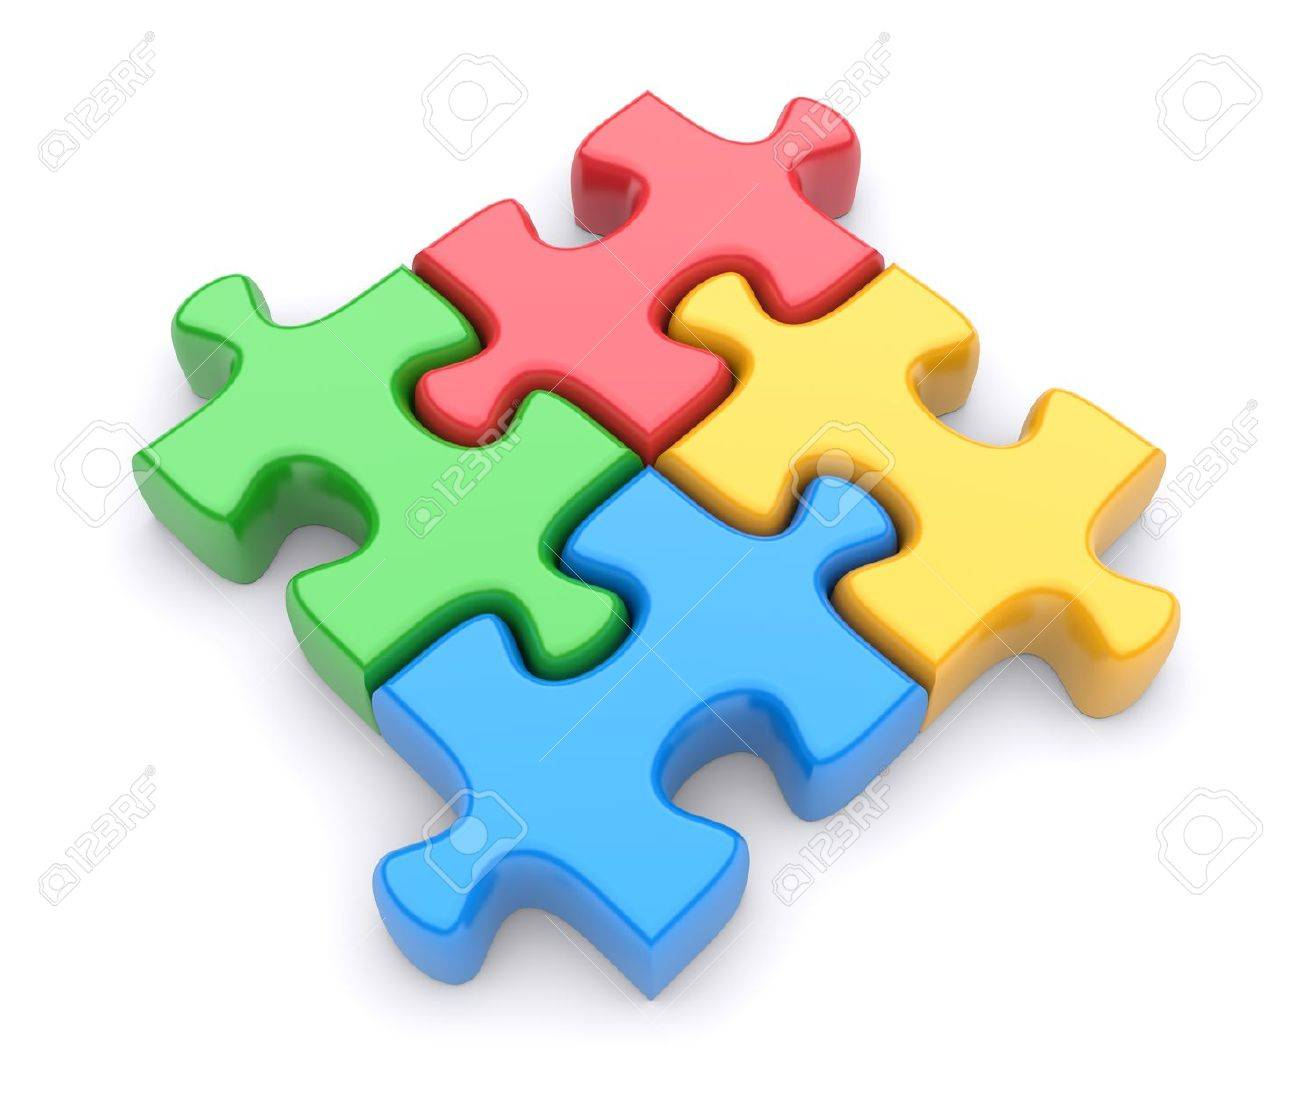 Jigsaw Puzzle On A White Background 3d Image Stock Photo